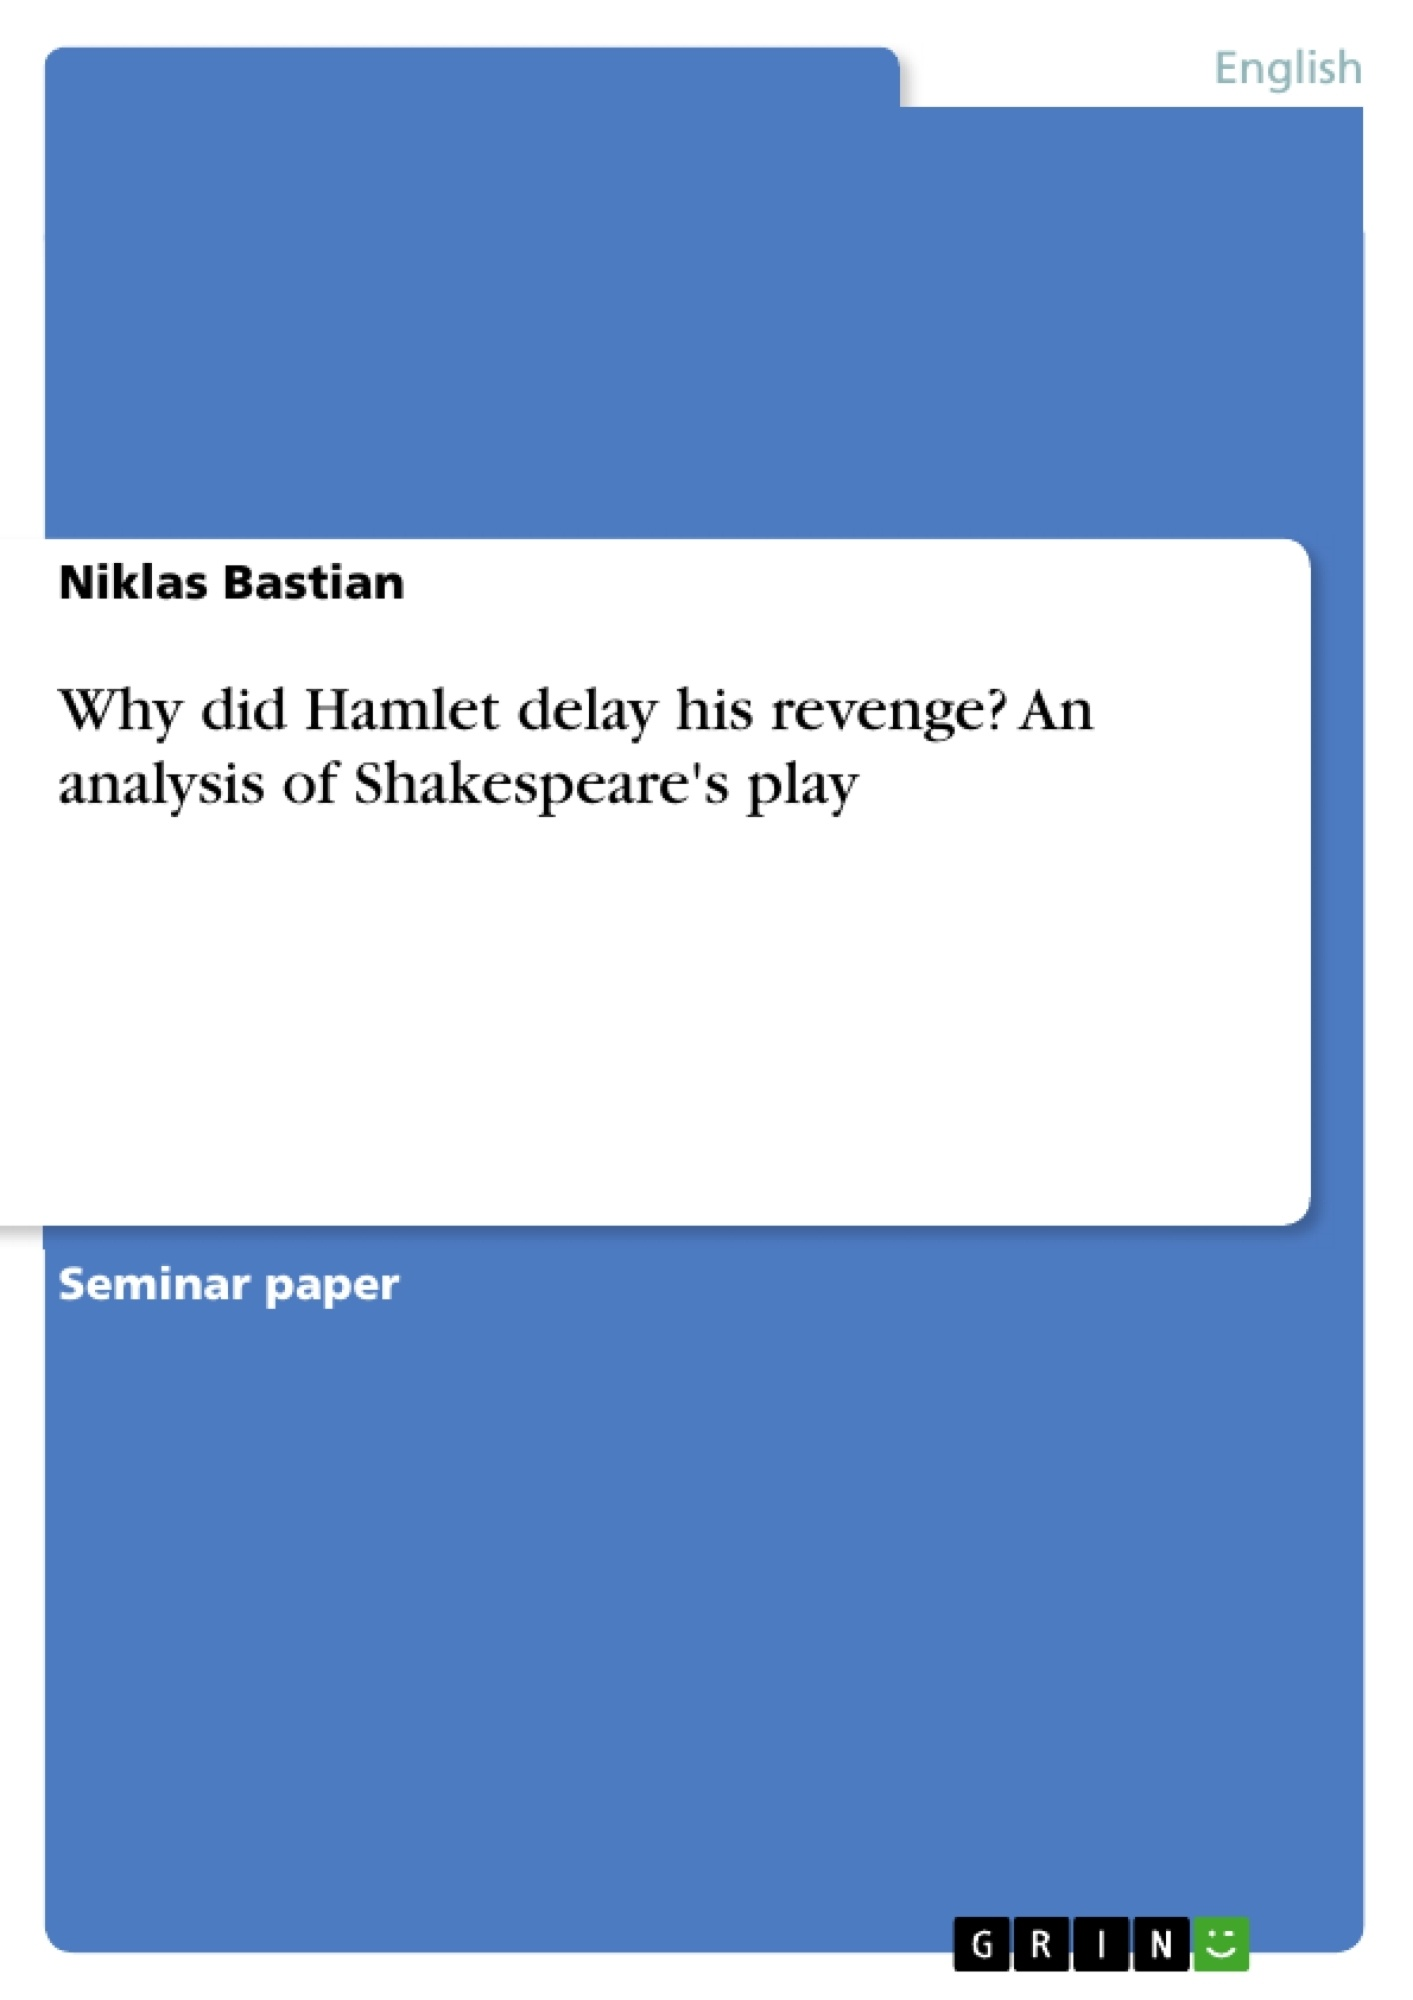 Title: Why did Hamlet delay his revenge? An analysis of Shakespeare's play